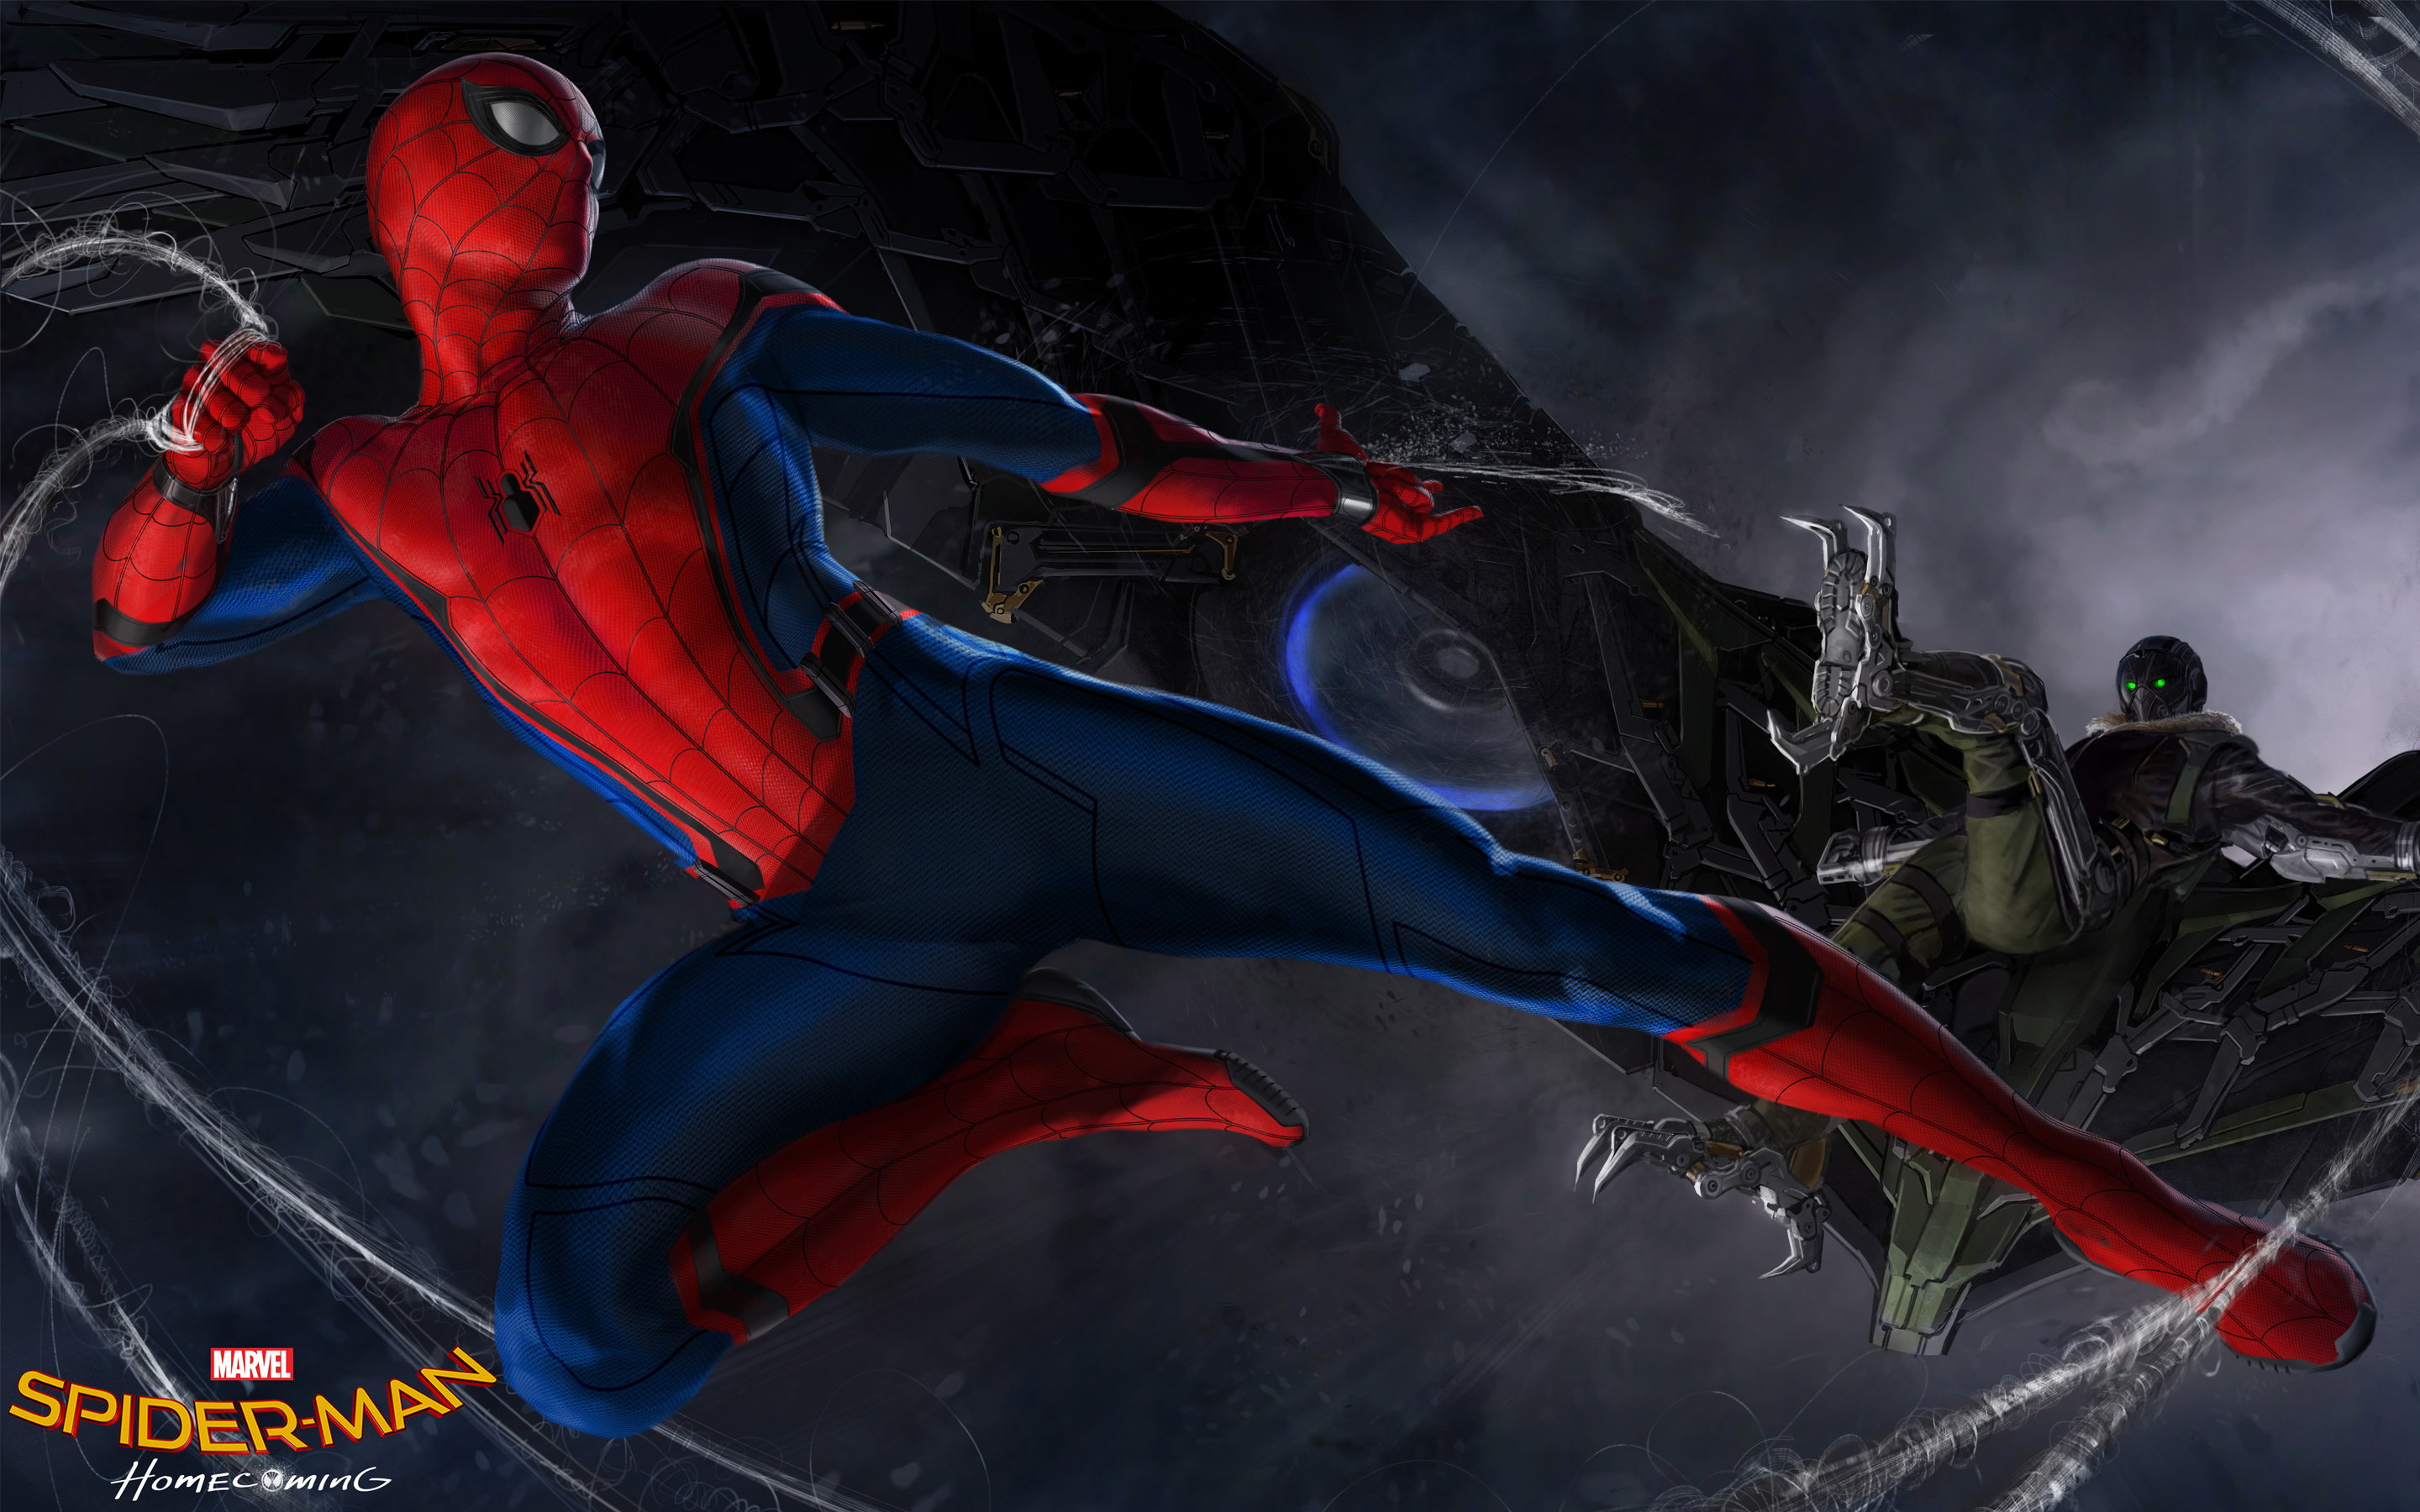 30 Latest Spider man Homecoming HD Wallpaper 2017 2880x1800